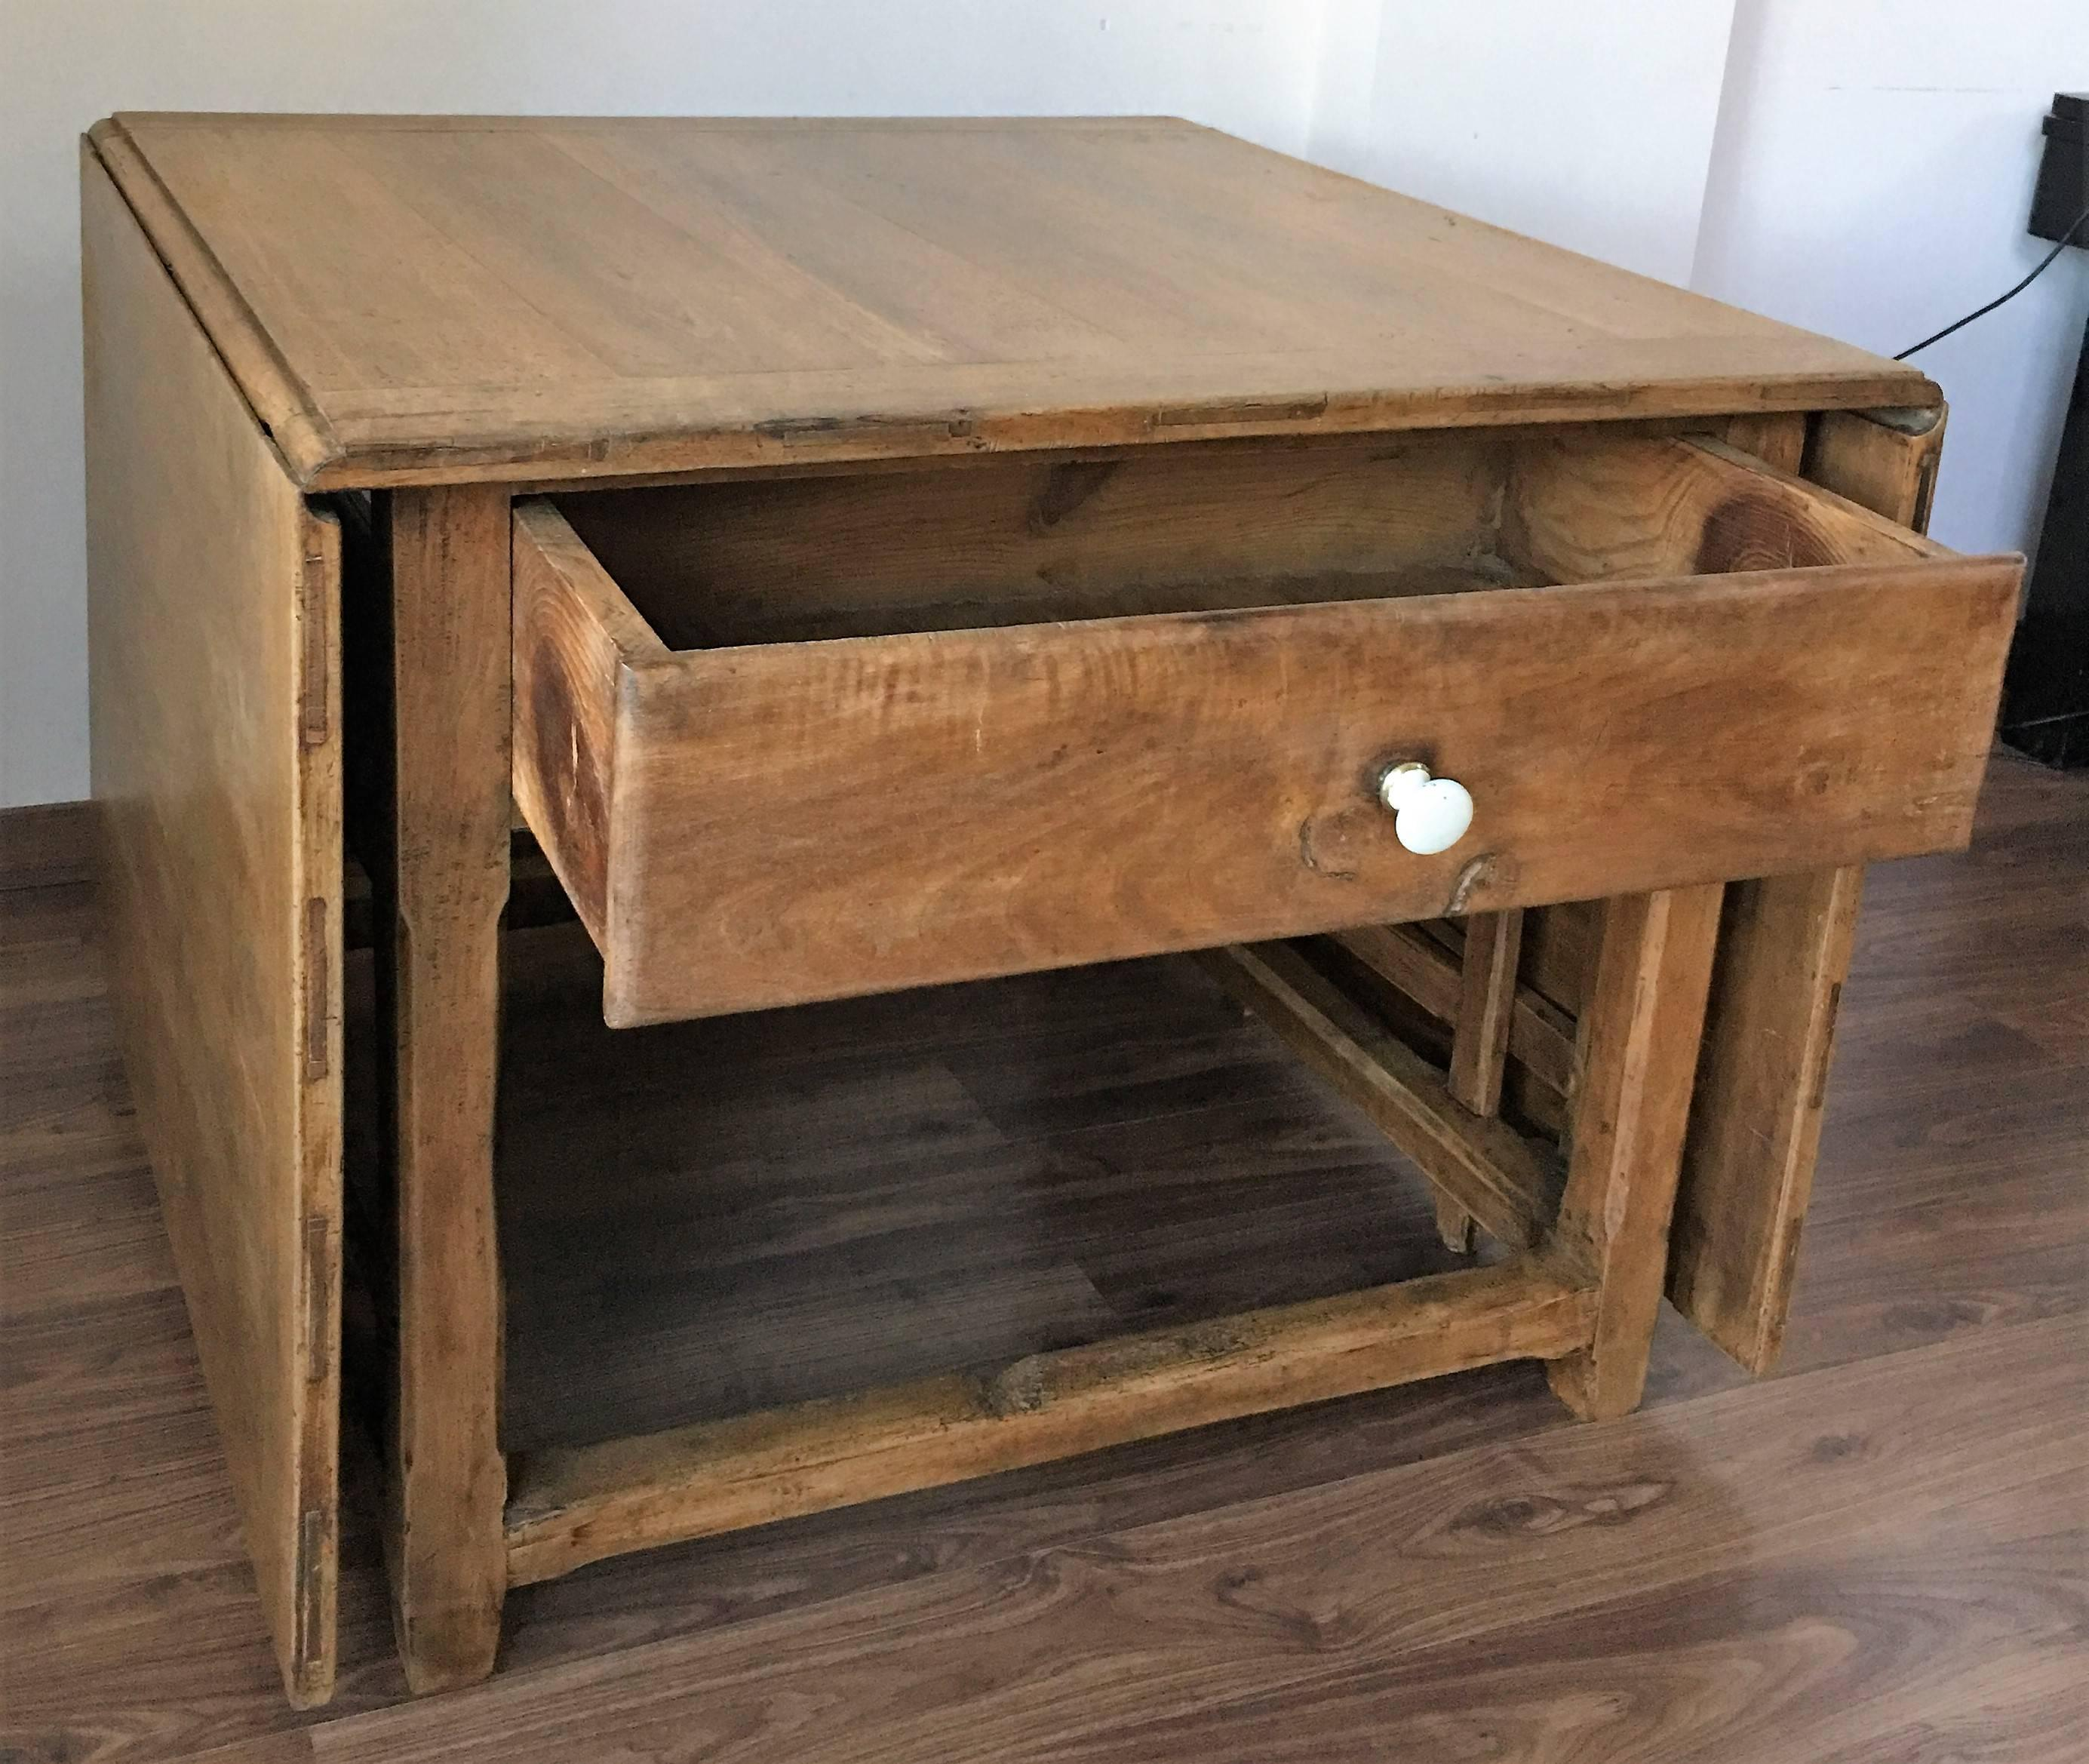 Spanish, 18th Century Drop Leaf Table With Four Gate Leg And Three Drawers